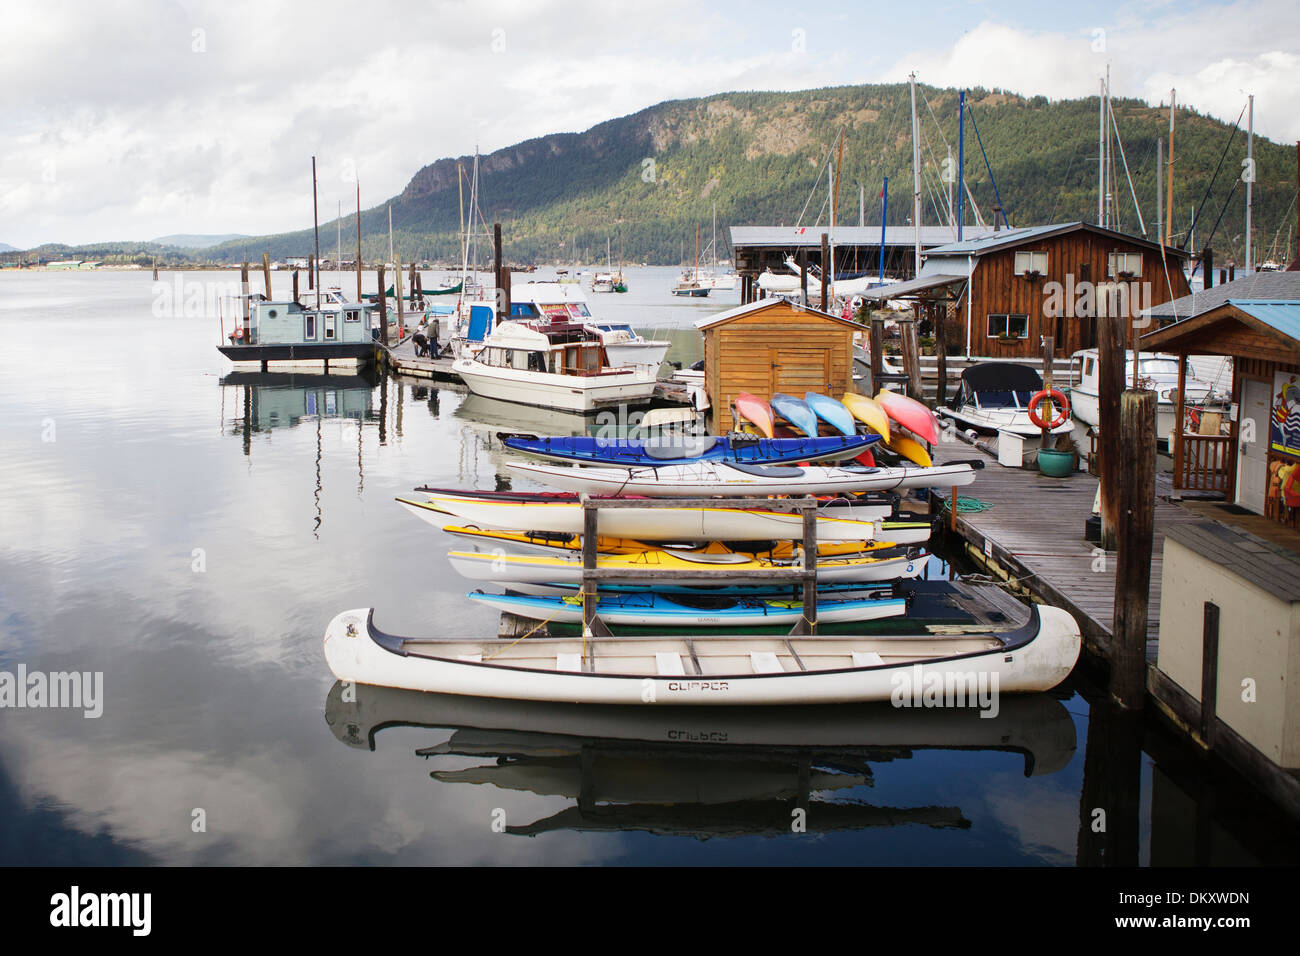 Boats and homes in a colorful Marina on Vancouver island. - Stock Image